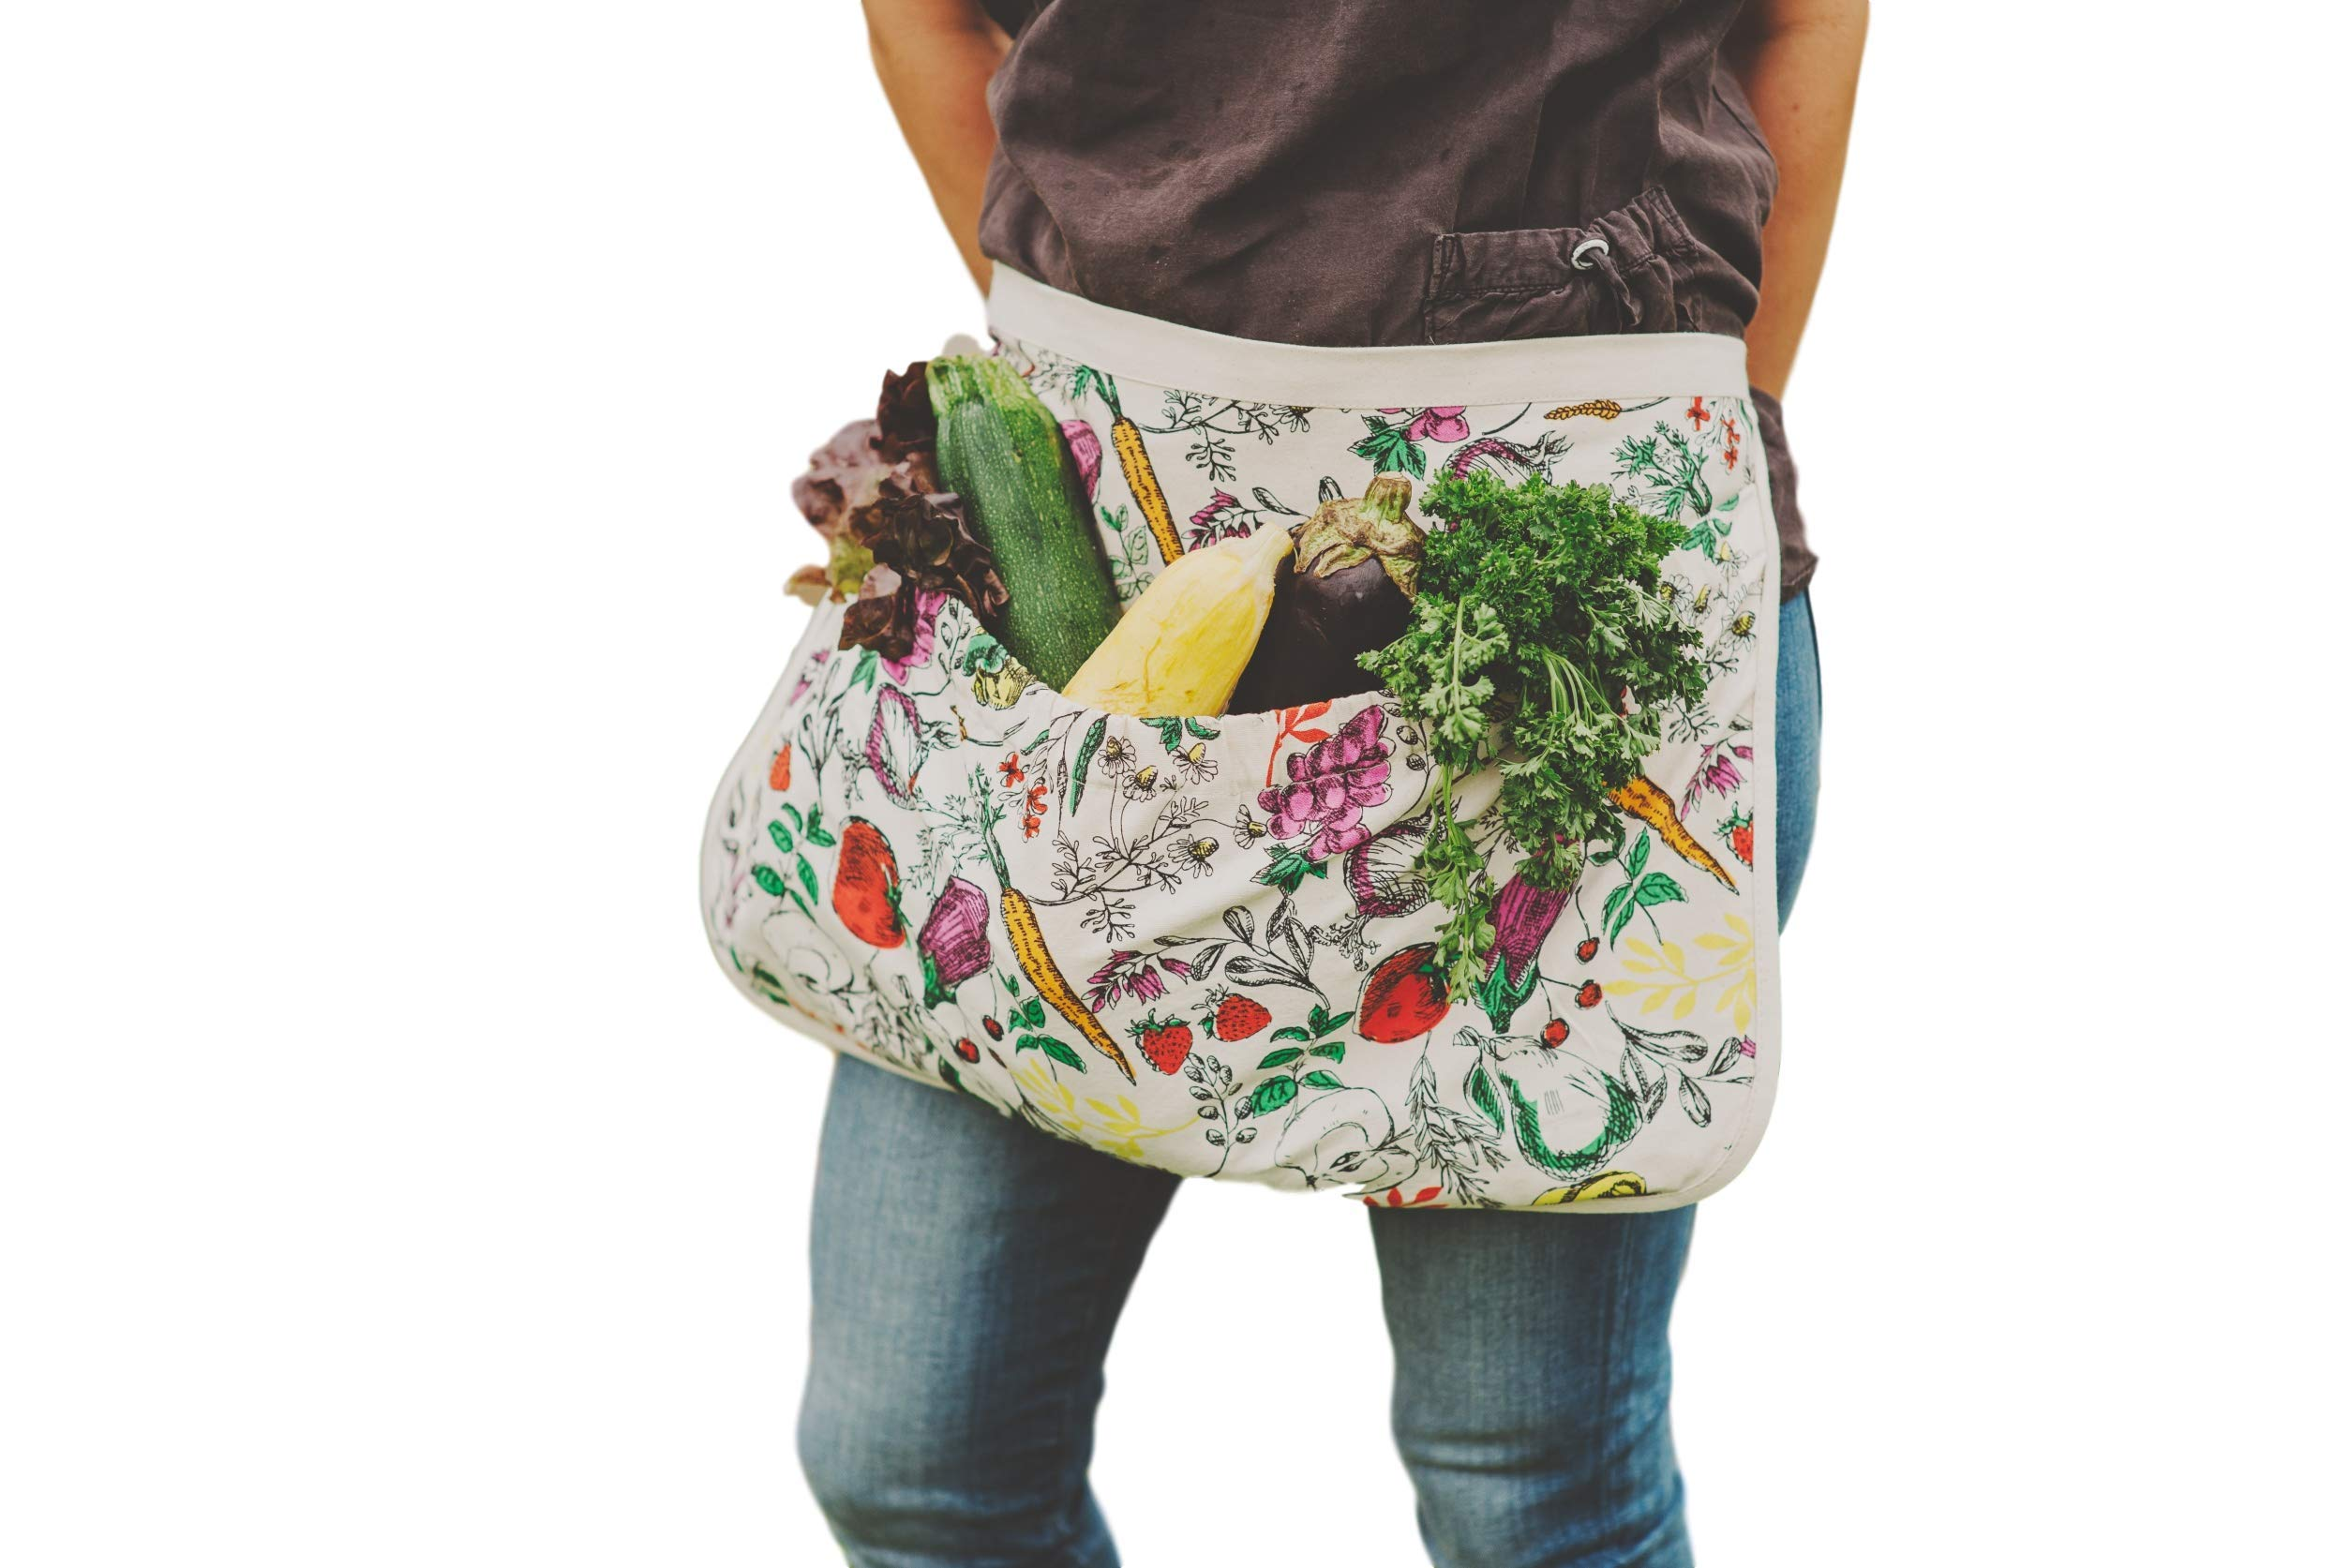 Fluffy Layers The Harvest Apron Gardening Apron, Gathering Apron, Apron for Gardening